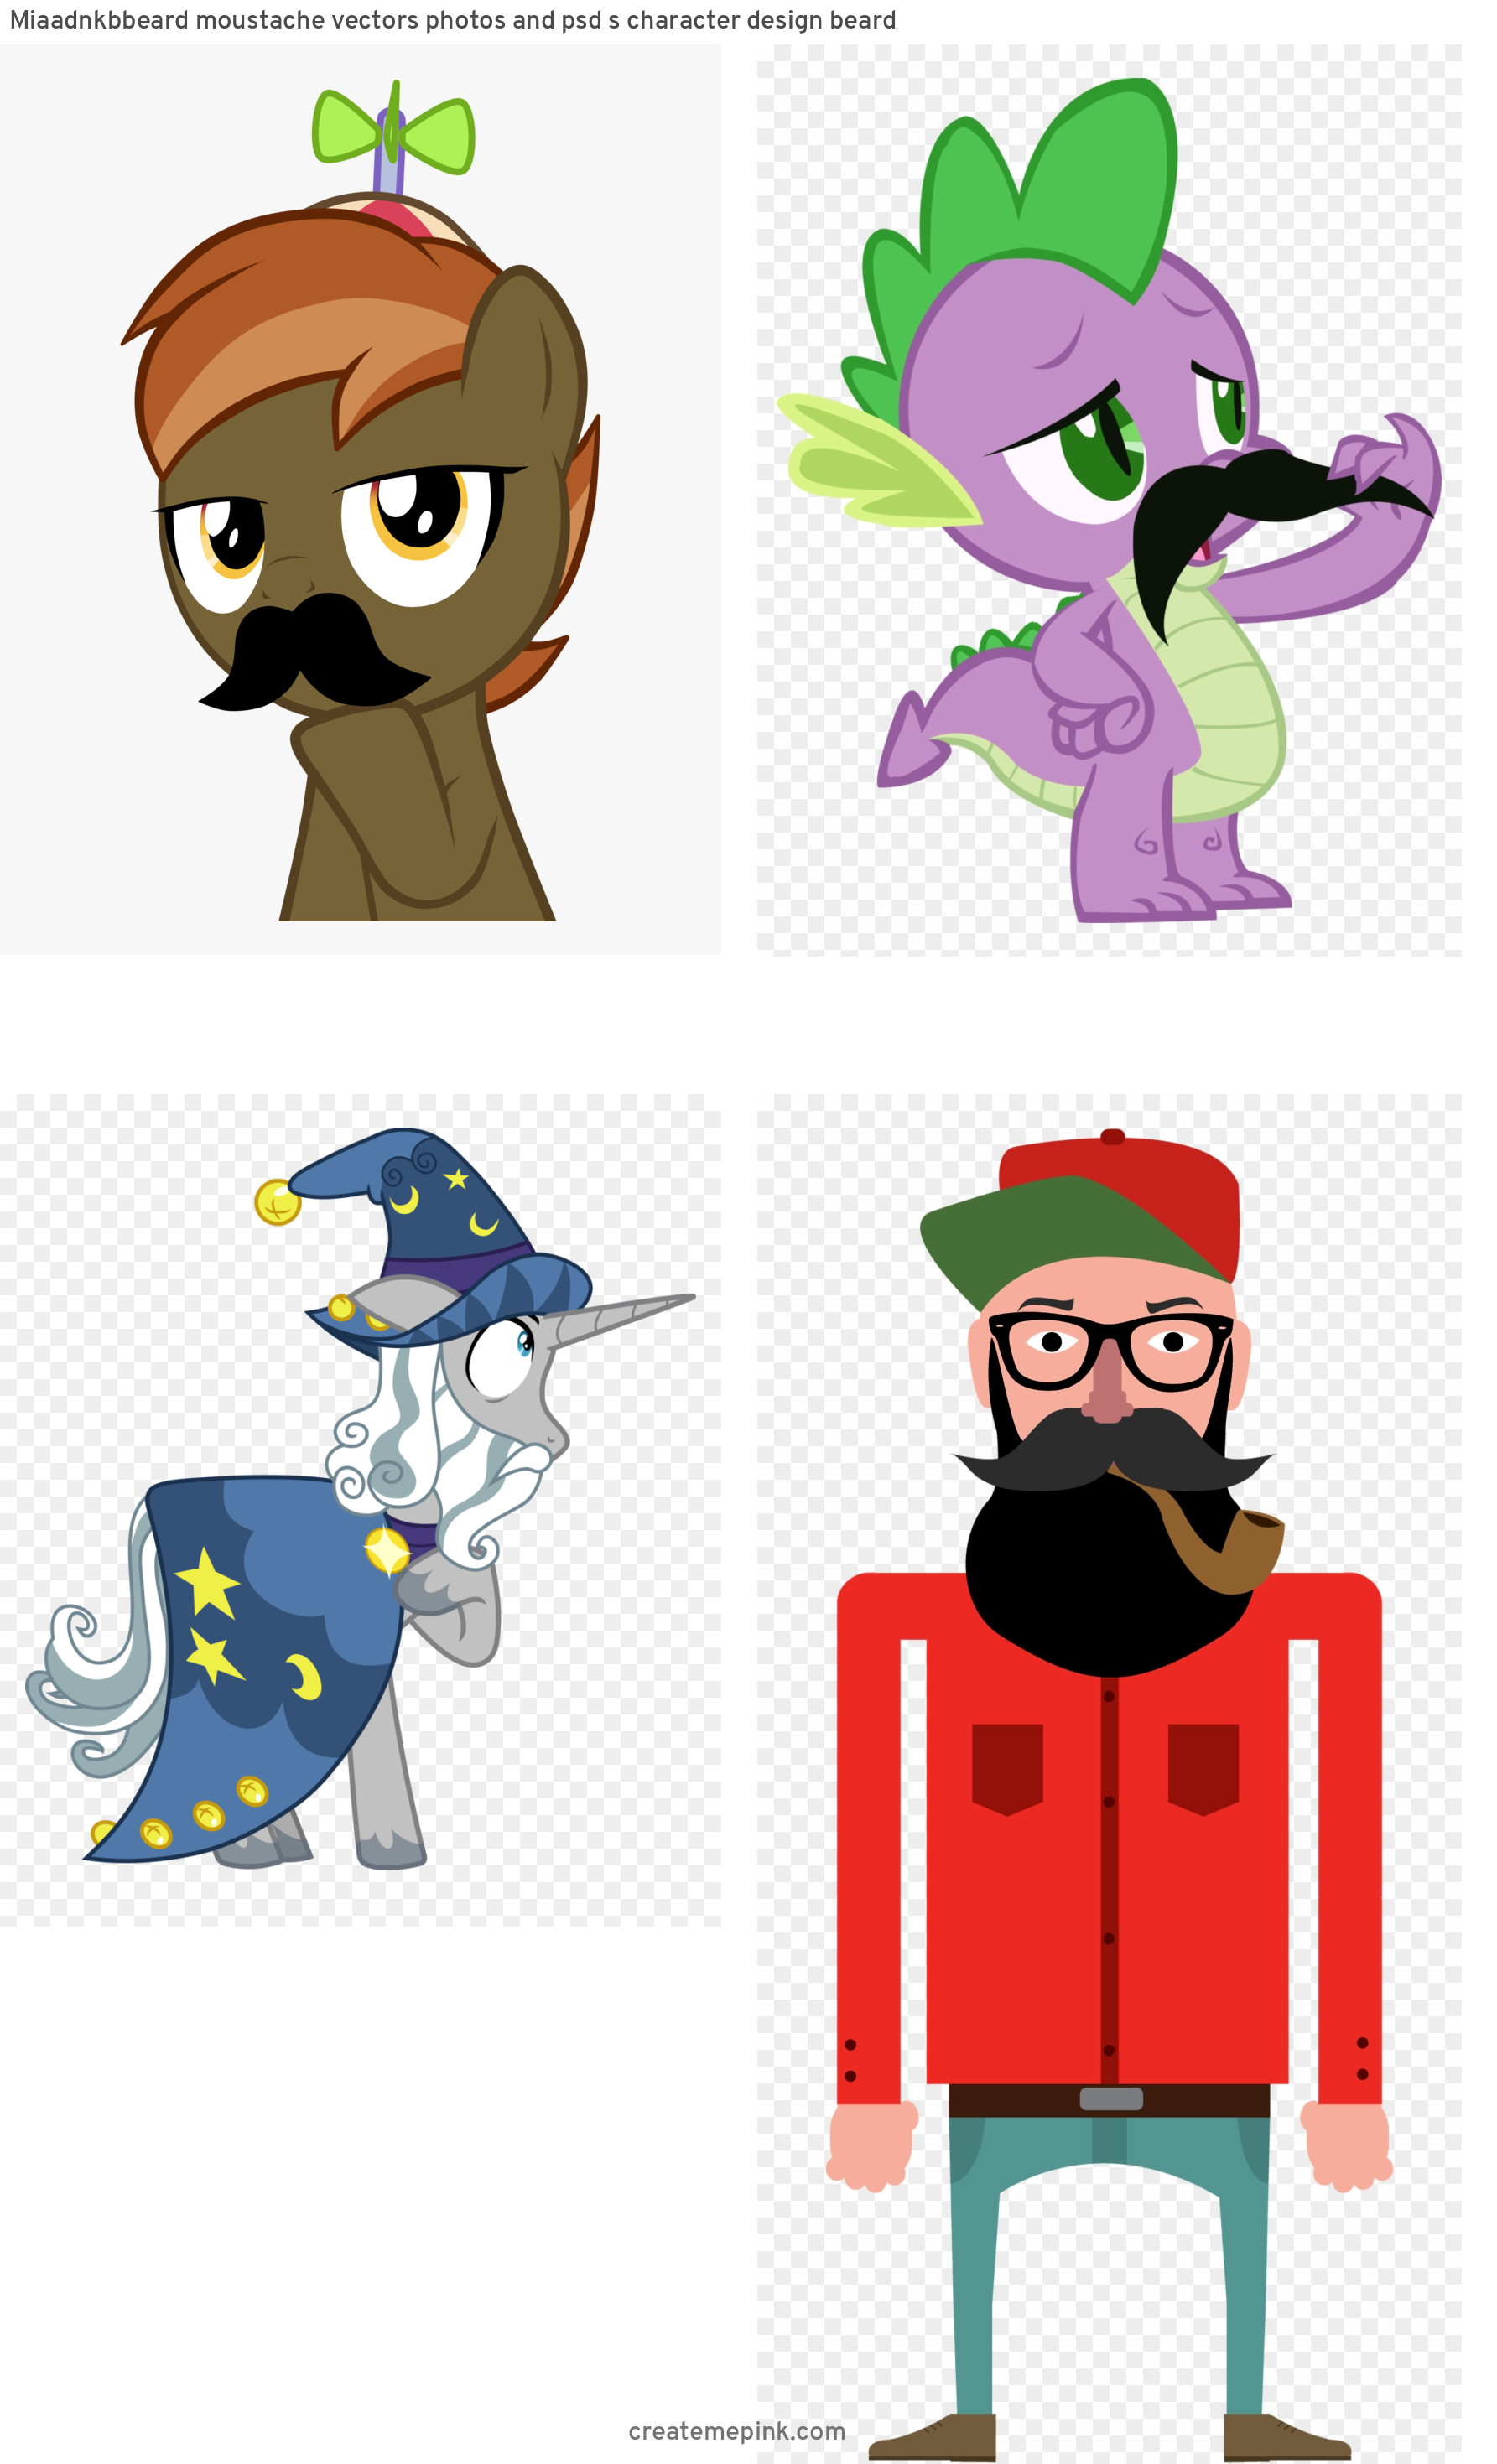 MLP Vector Mustache: Miaadnkbbeard Moustache Vectors Photos And Psd S Character Design Beard